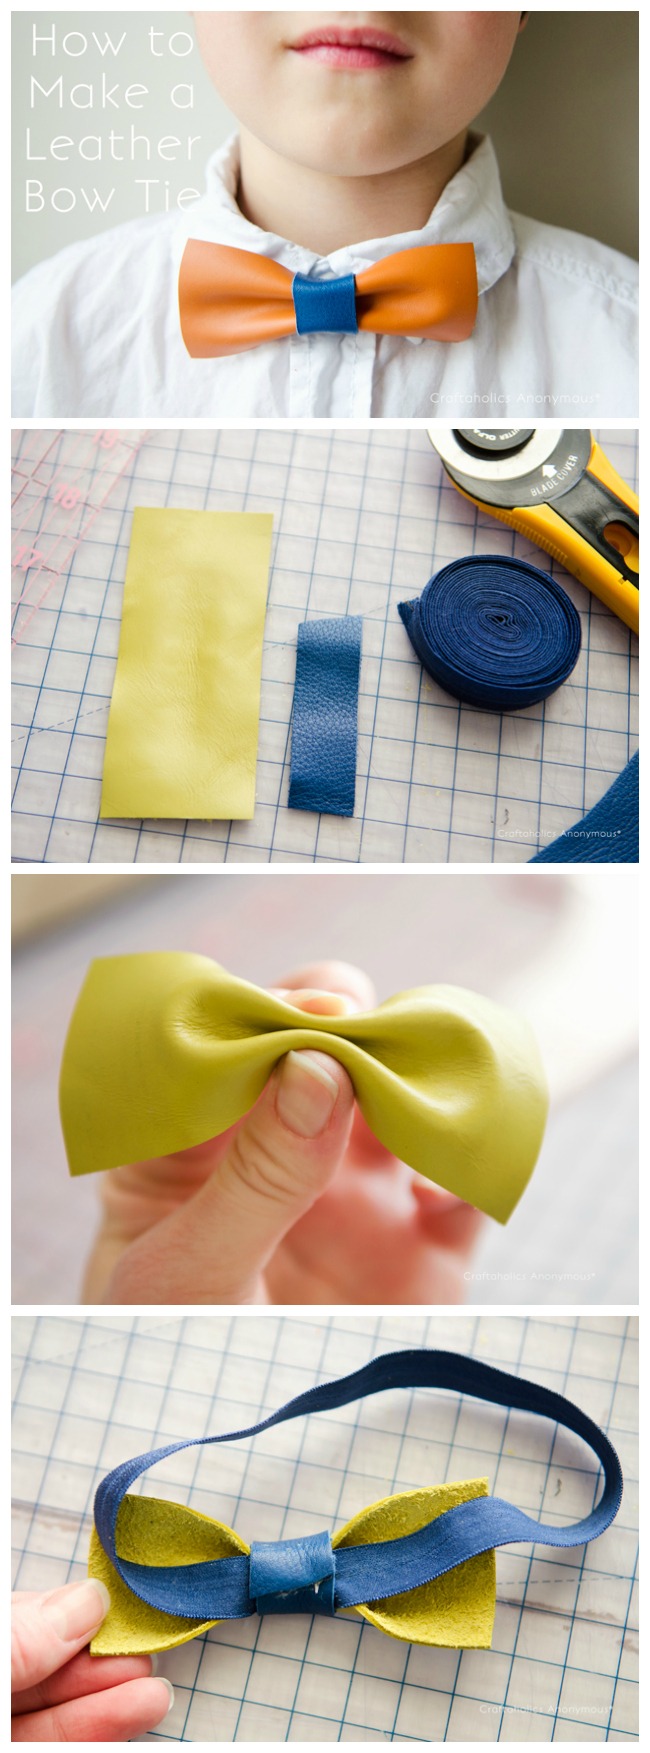 how to make leather bow tie